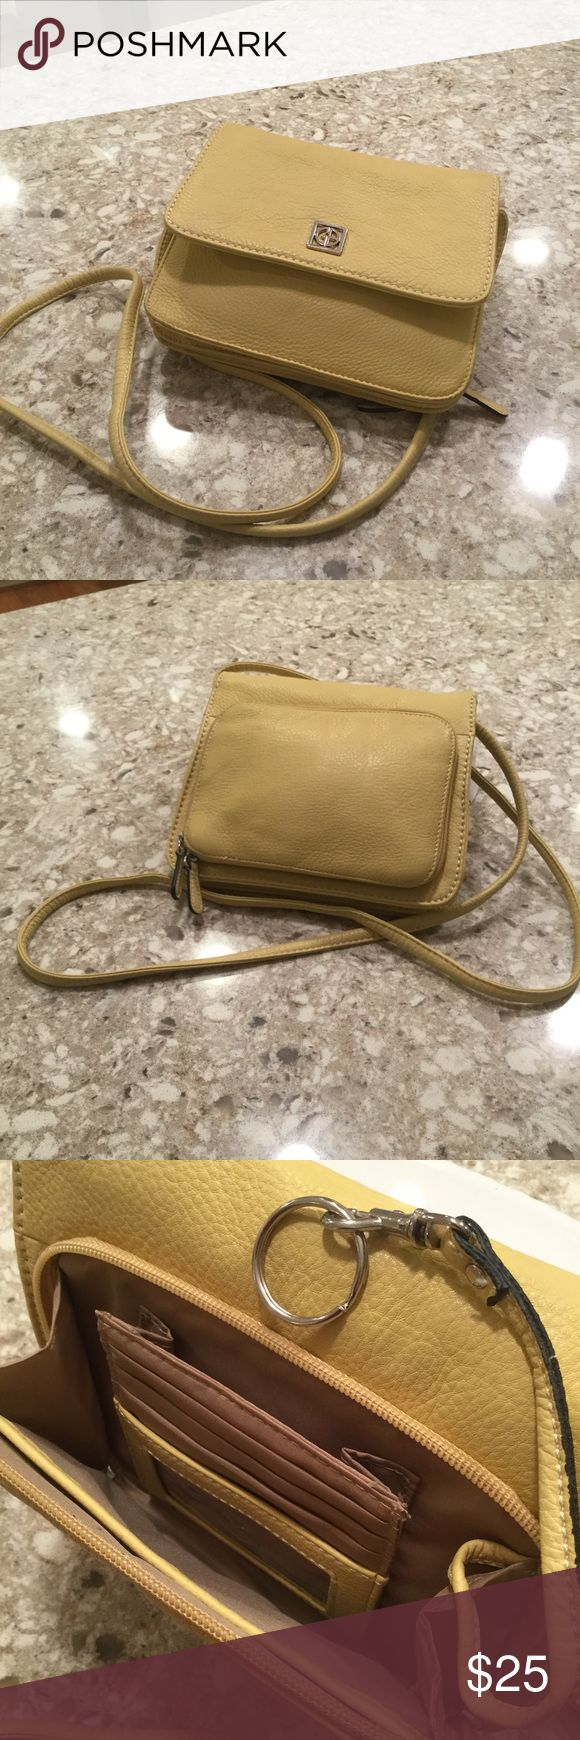 """Gianbernini yellow pebble leather cross body Excellent condition.  No wear and tear.  Interior spotless. YELLOW. Exterior:  outside zip pocket, 4 credit card slots, cell phone pocket, open pocket with key chain. Also, under flap, zip pocket. Interior:  3 pockets with back zip pocket. 2nd cell phone pocket.  Plenty room for iPhone six plus. 25"""" strap. 8 1/4 x 7 x 3 gianbernini Bags Crossbody Bags"""